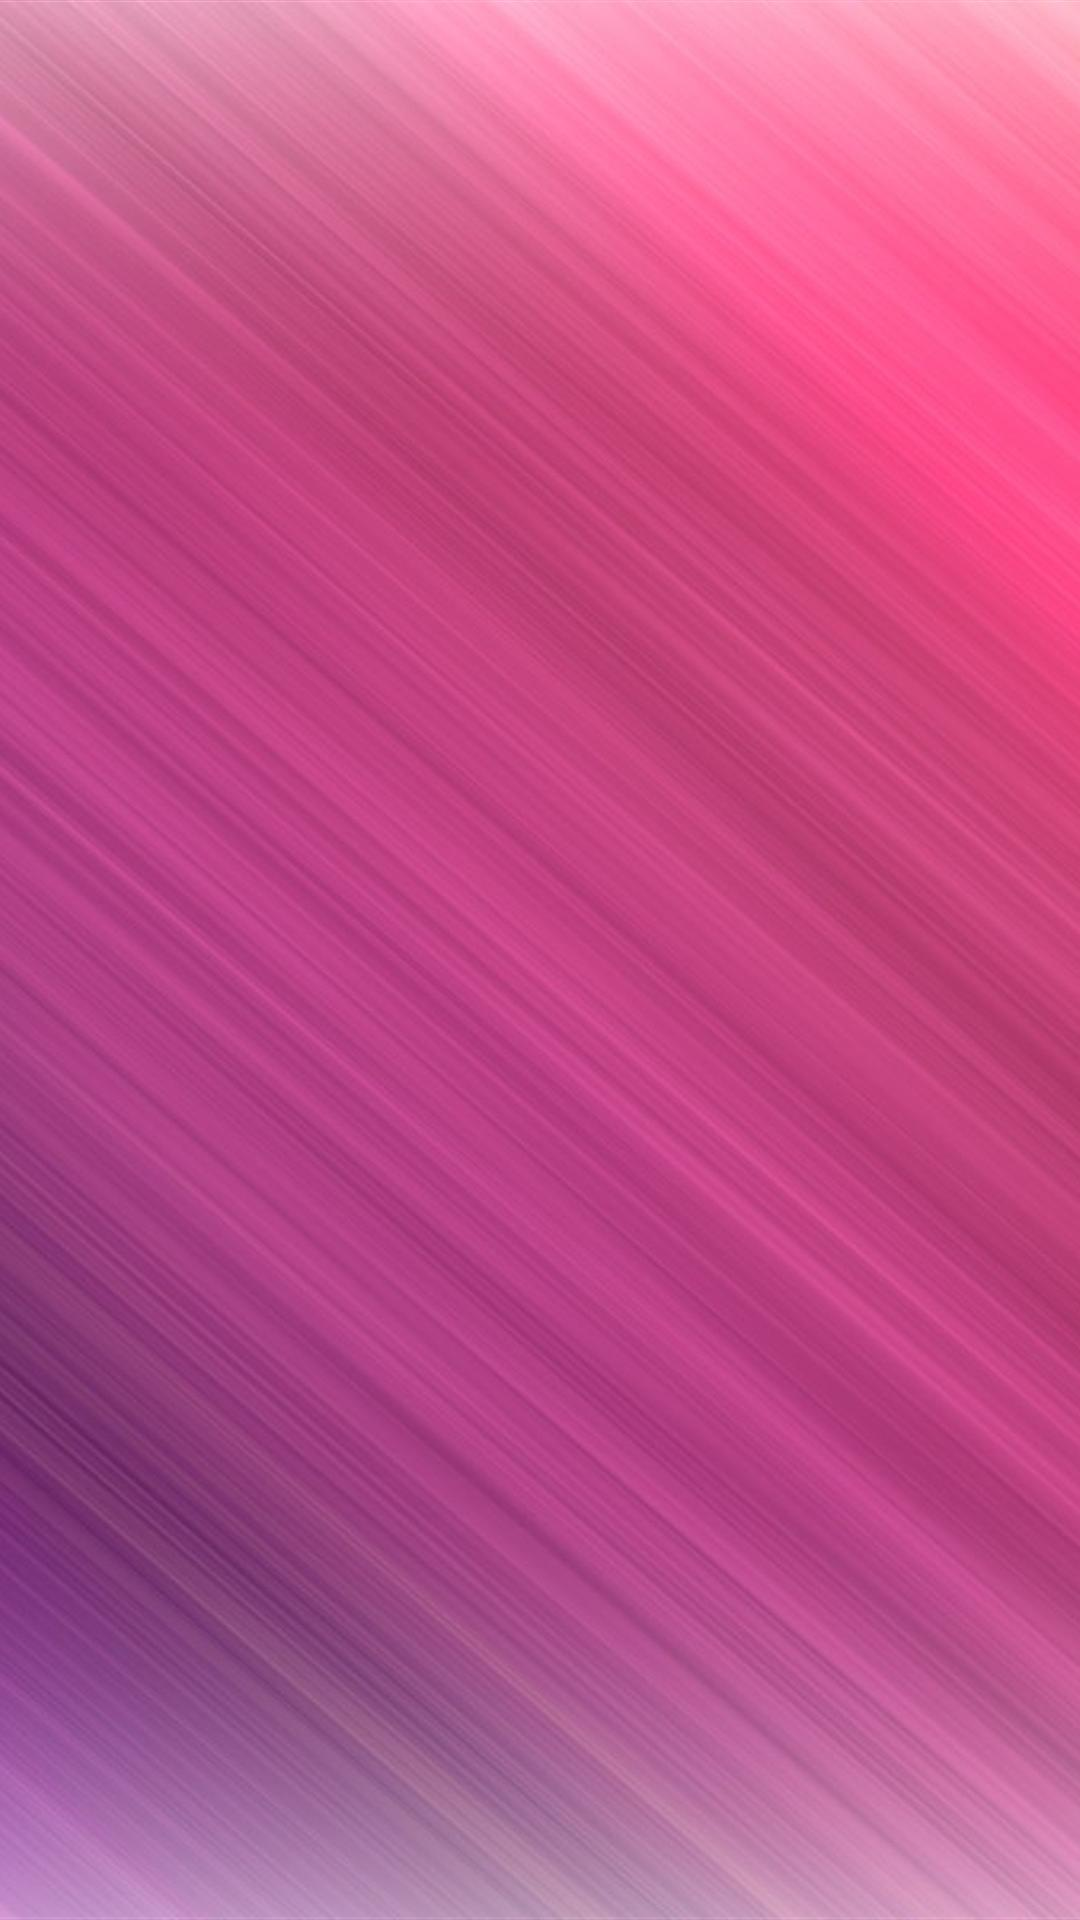 line obliquely pink colorful iphone 6 plus wallpapers 1080x1920